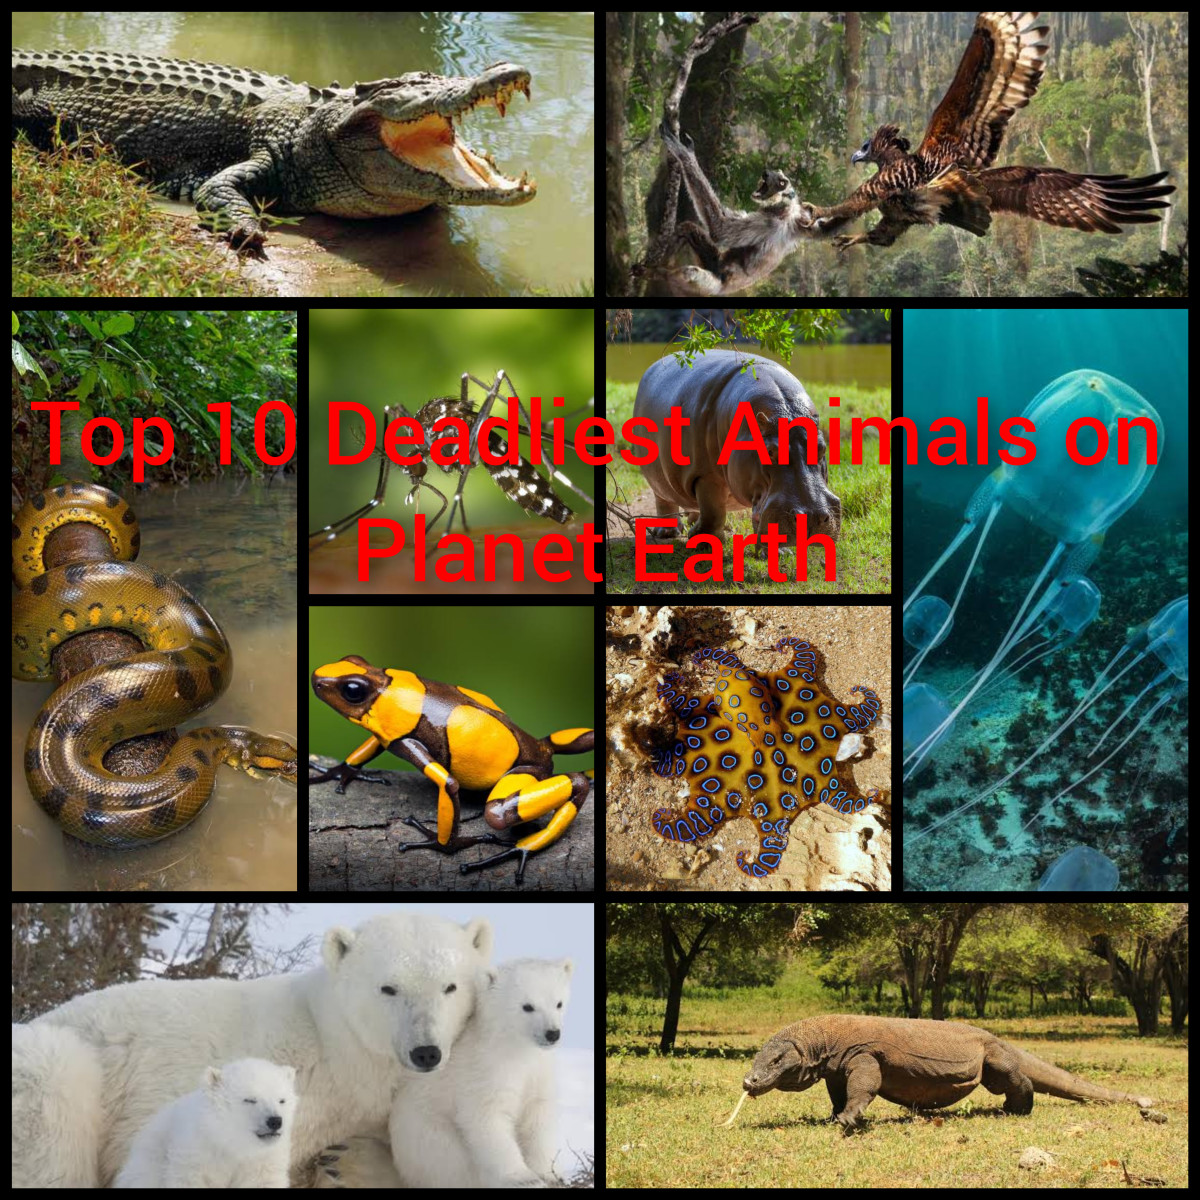 Top 10 deadliest animals on planet Earth.